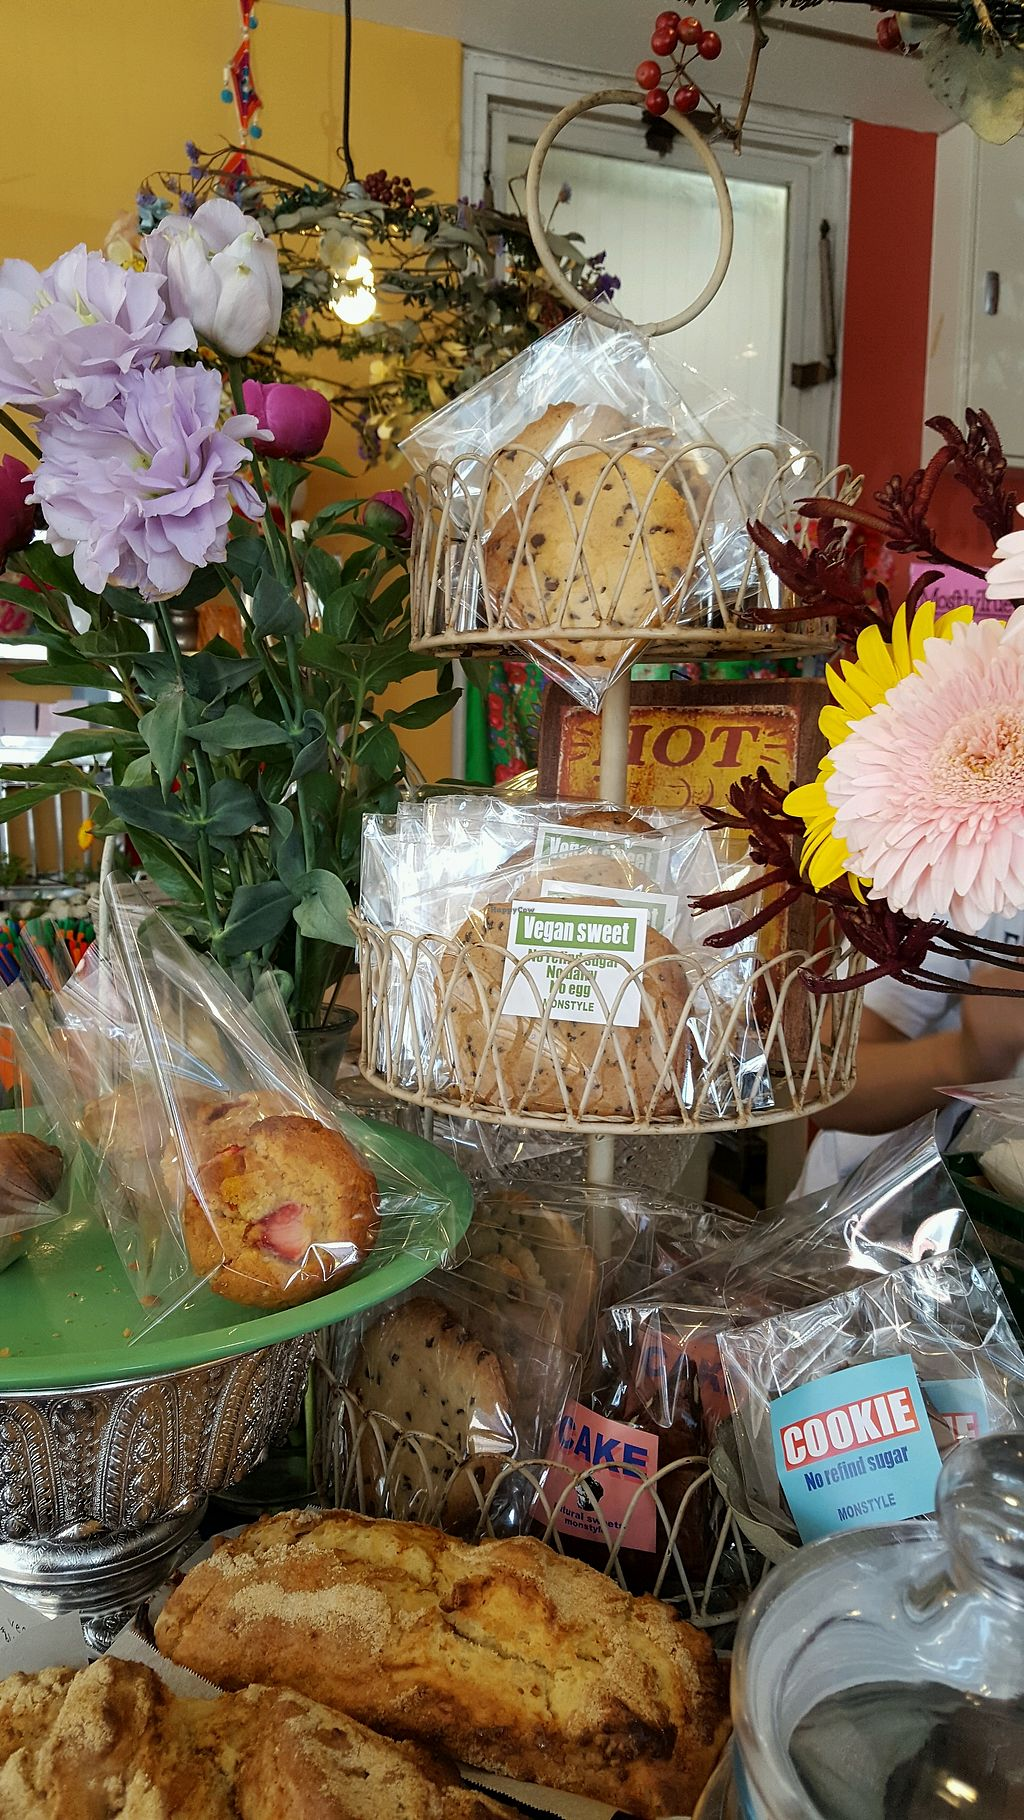 """Photo of Monstyle  by <a href=""""/members/profile/MelissaBlevens"""">MelissaBlevens</a> <br/>Vegan sweets and bakery goods clearly labeled. There were chocolate chip cookies today <br/> April 20, 2018  - <a href='/contact/abuse/image/83253/388339'>Report</a>"""